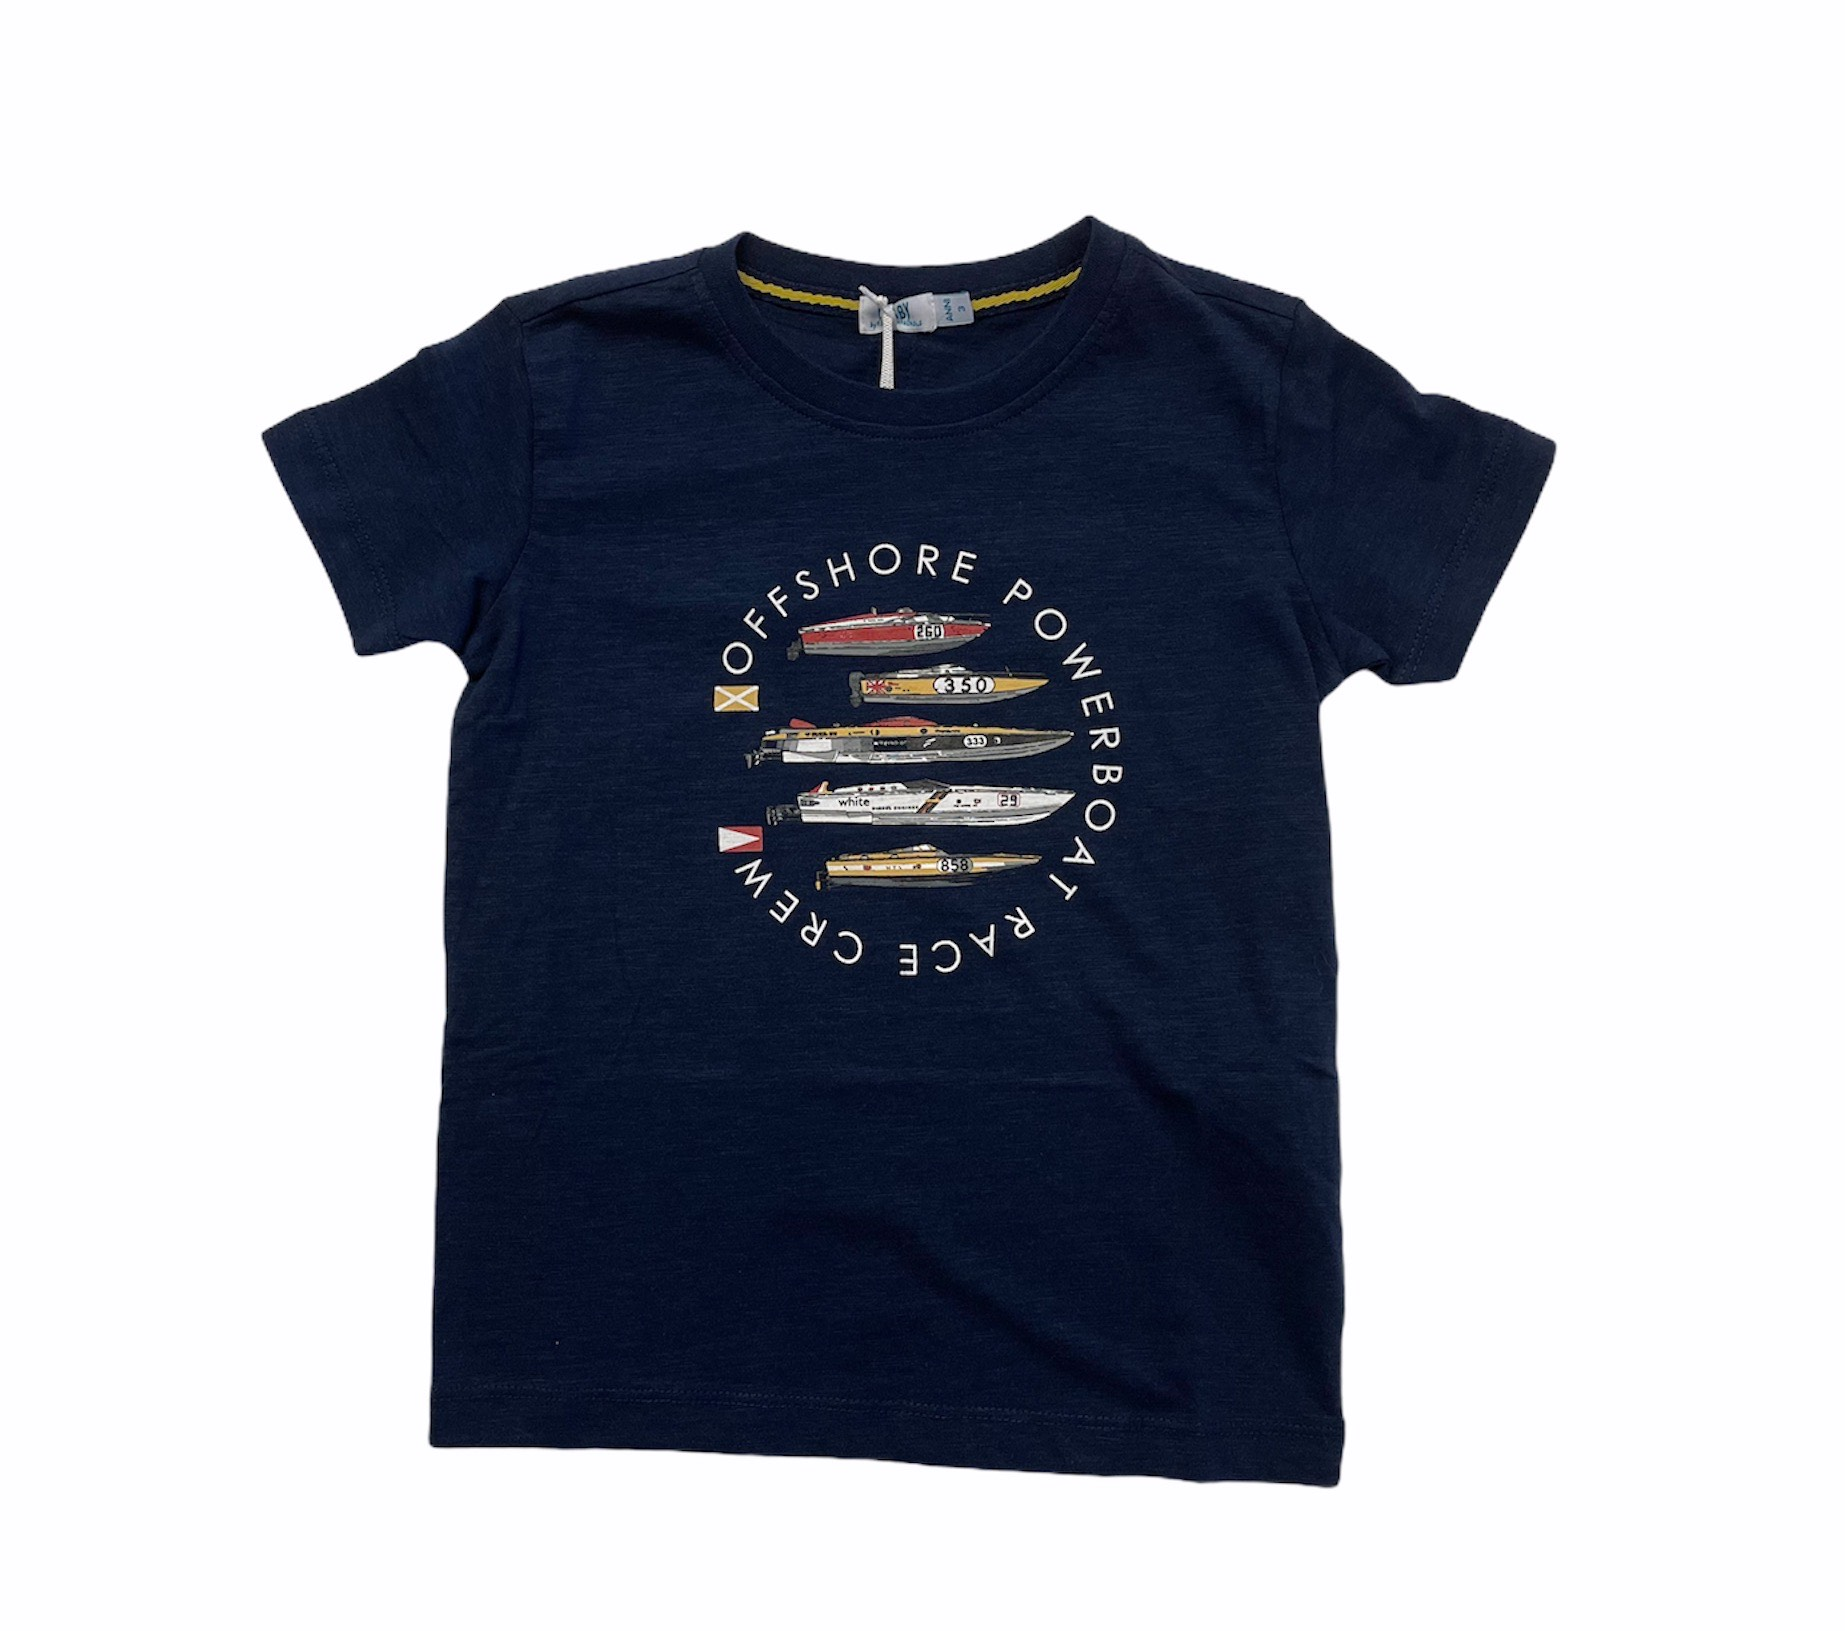 T-SHIRT MELBY POWER BOAT 1